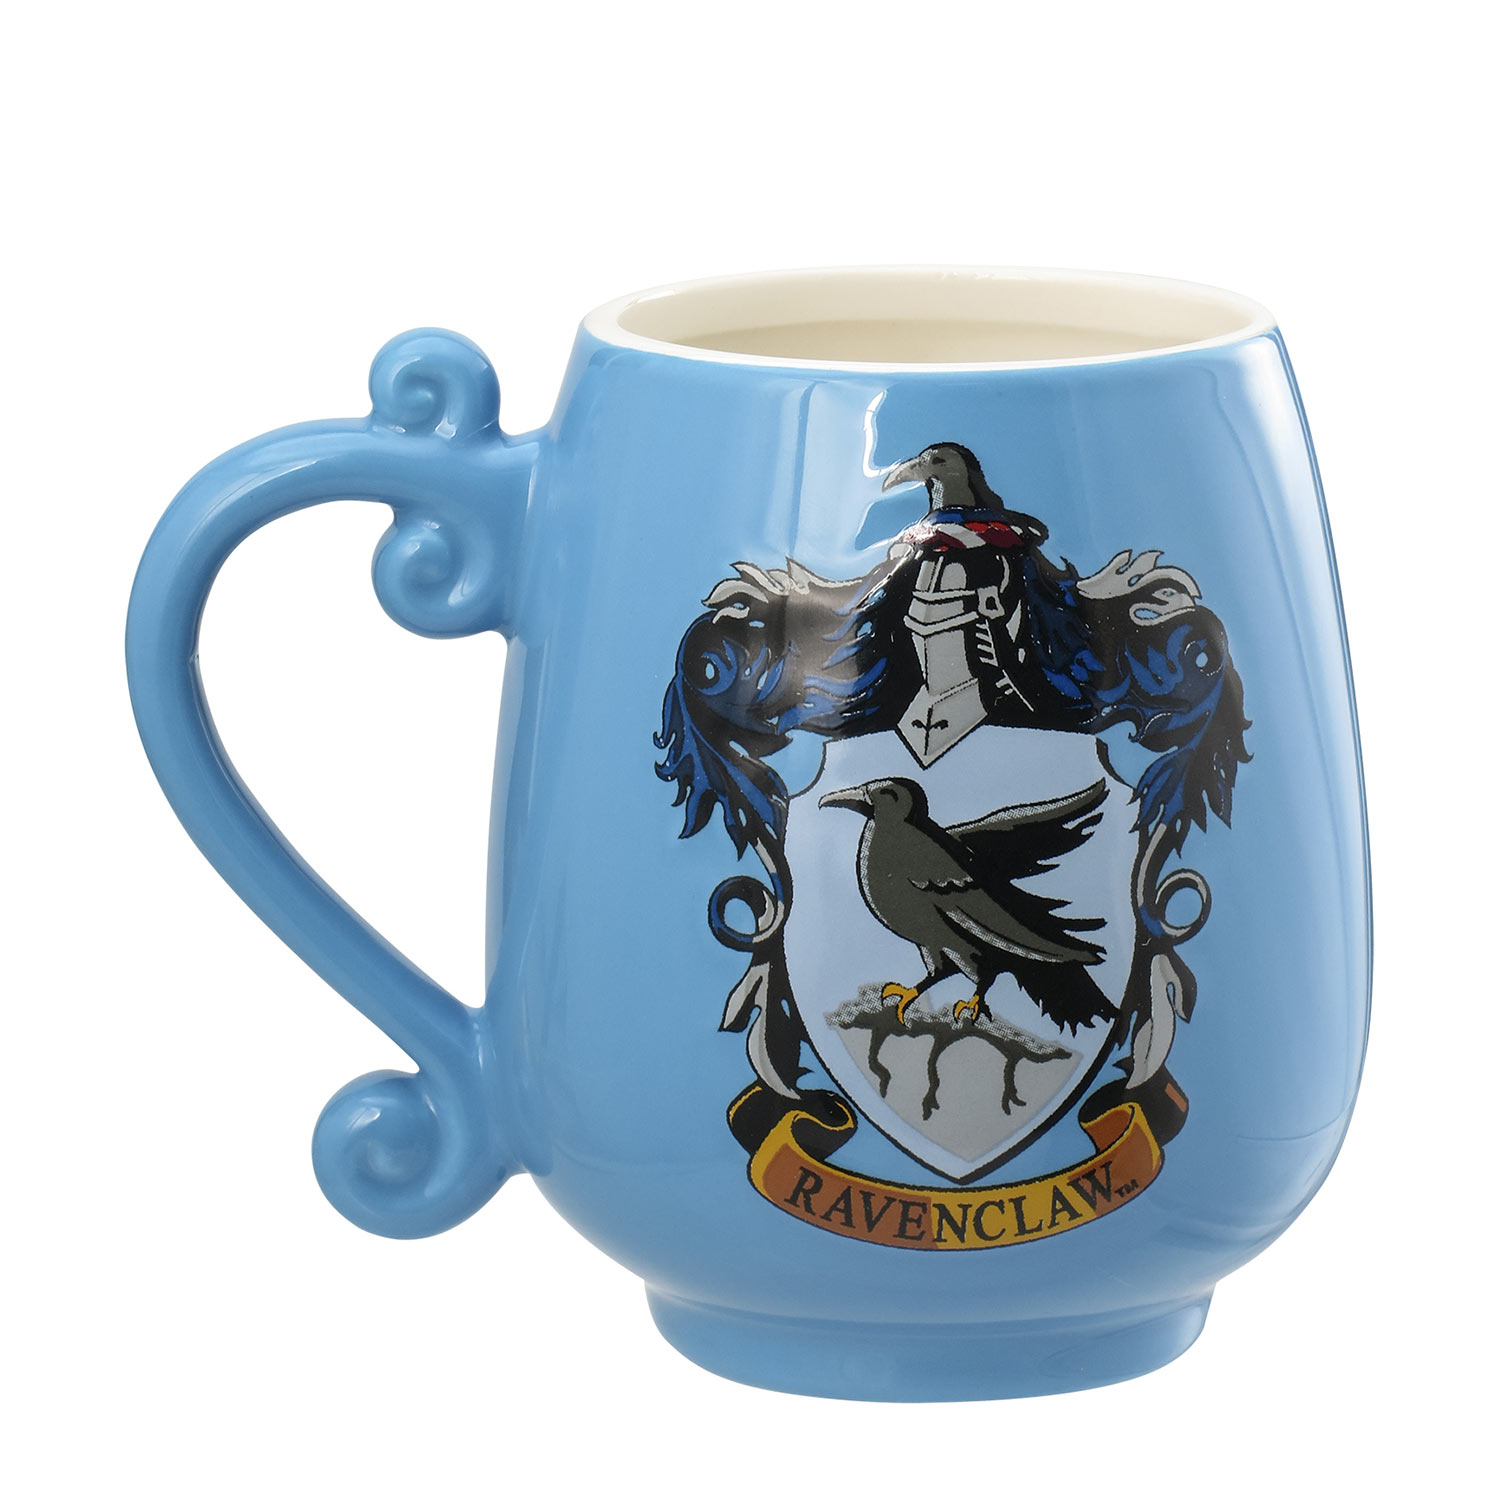 Harry Potter Ravenclaw School Blue Mug